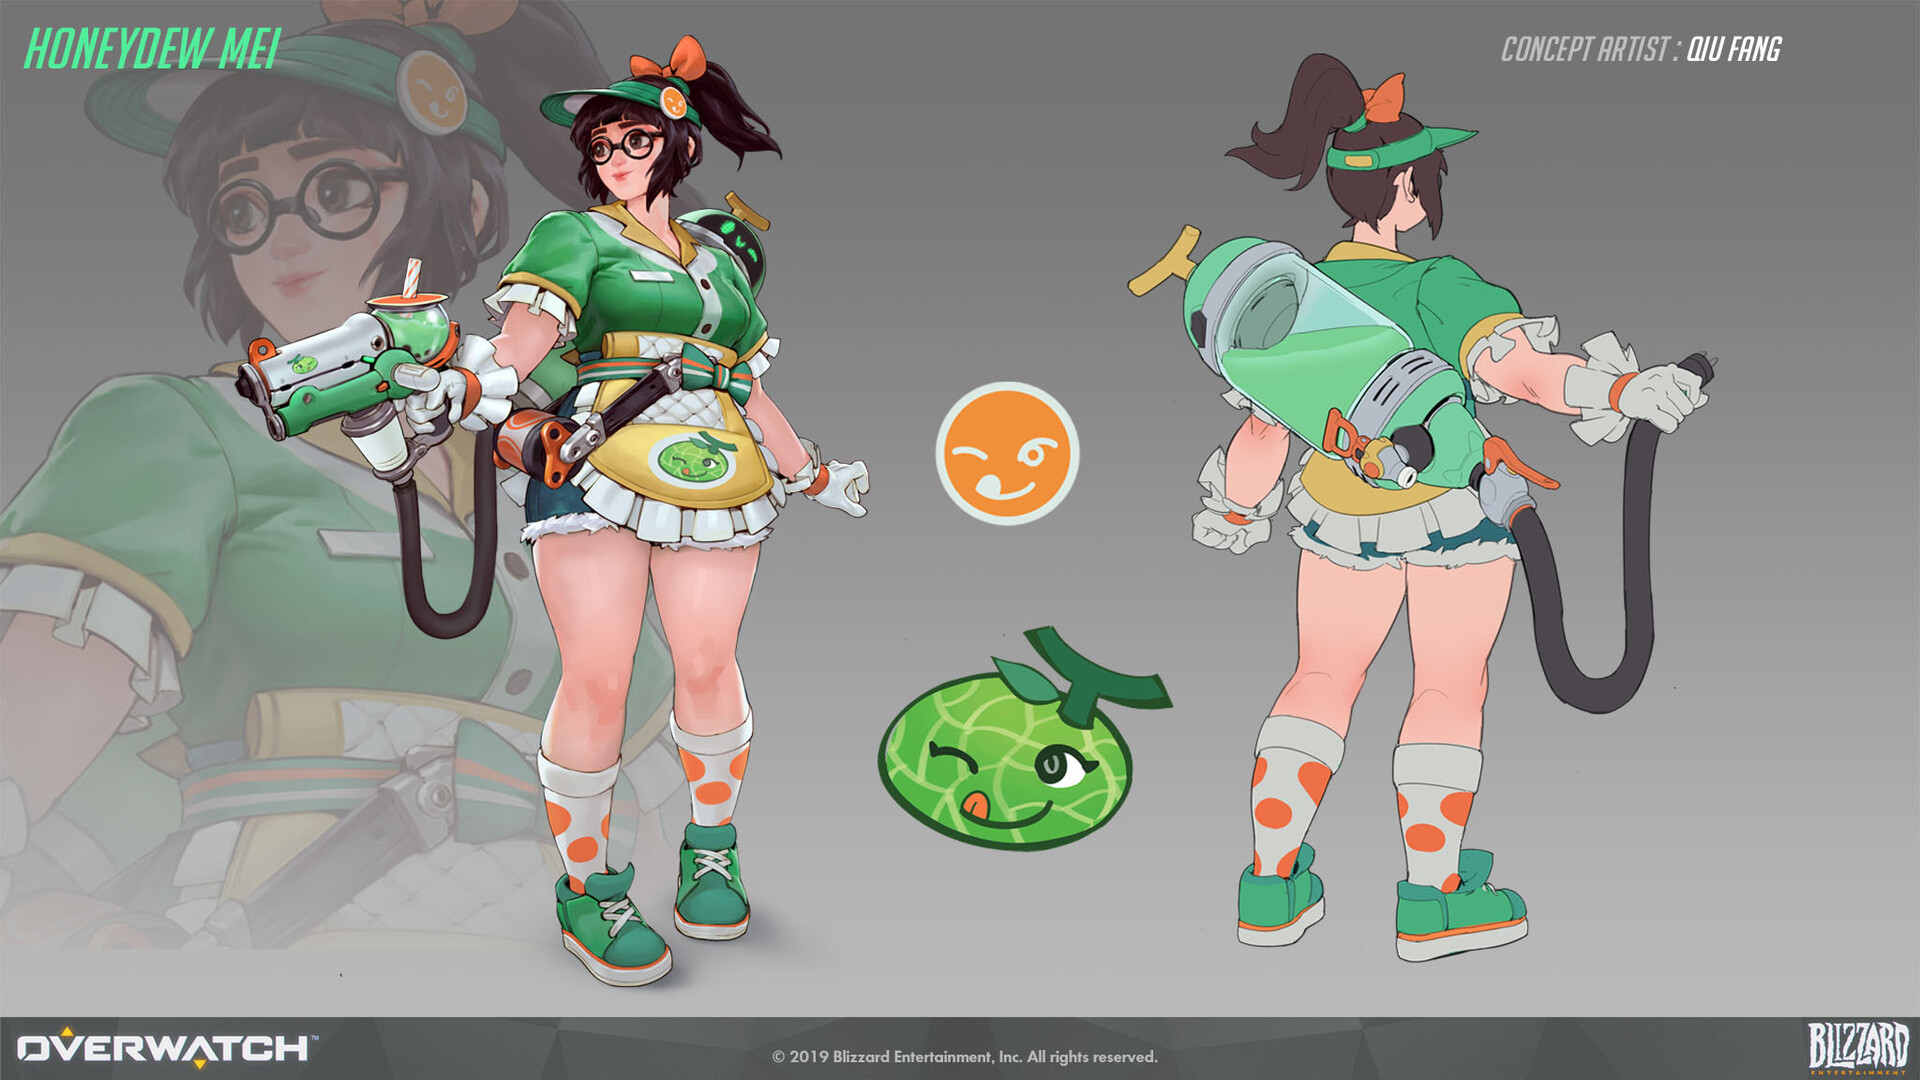 Honeydew Mei Concept Art